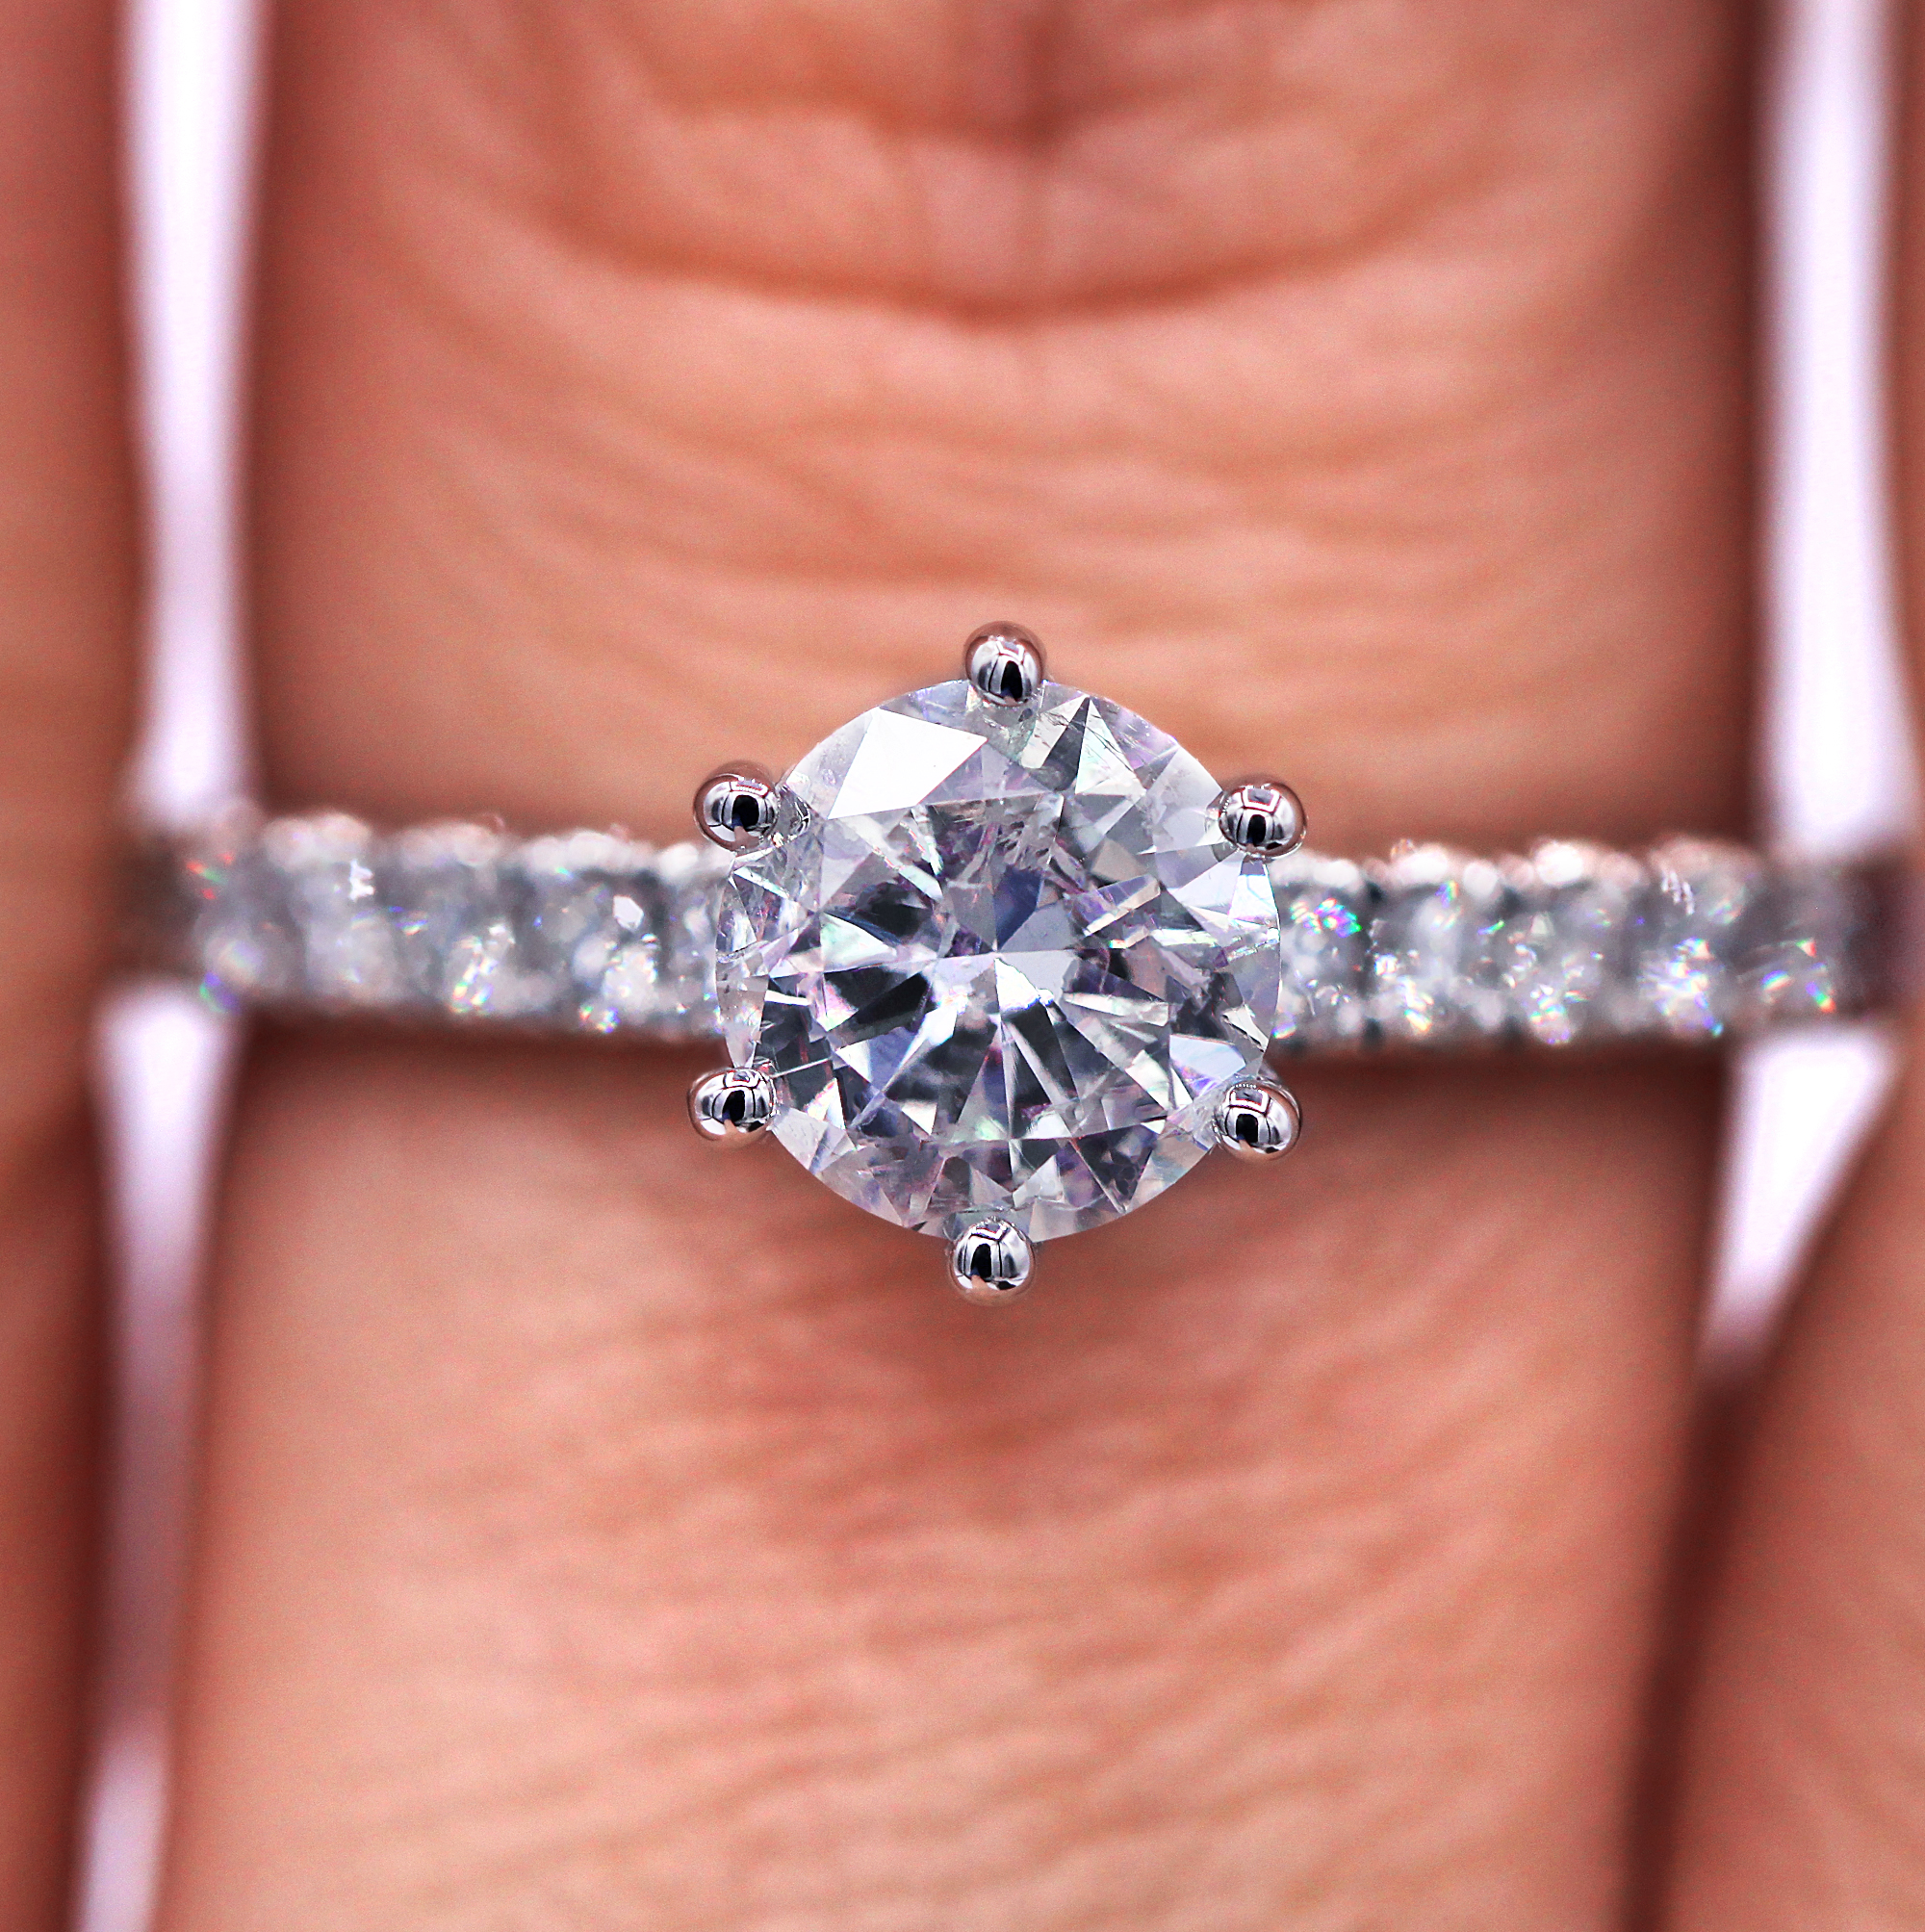 co cf round oliver platinum in type jewellery ring solitaire rings products tiffany engagement vendor diamond